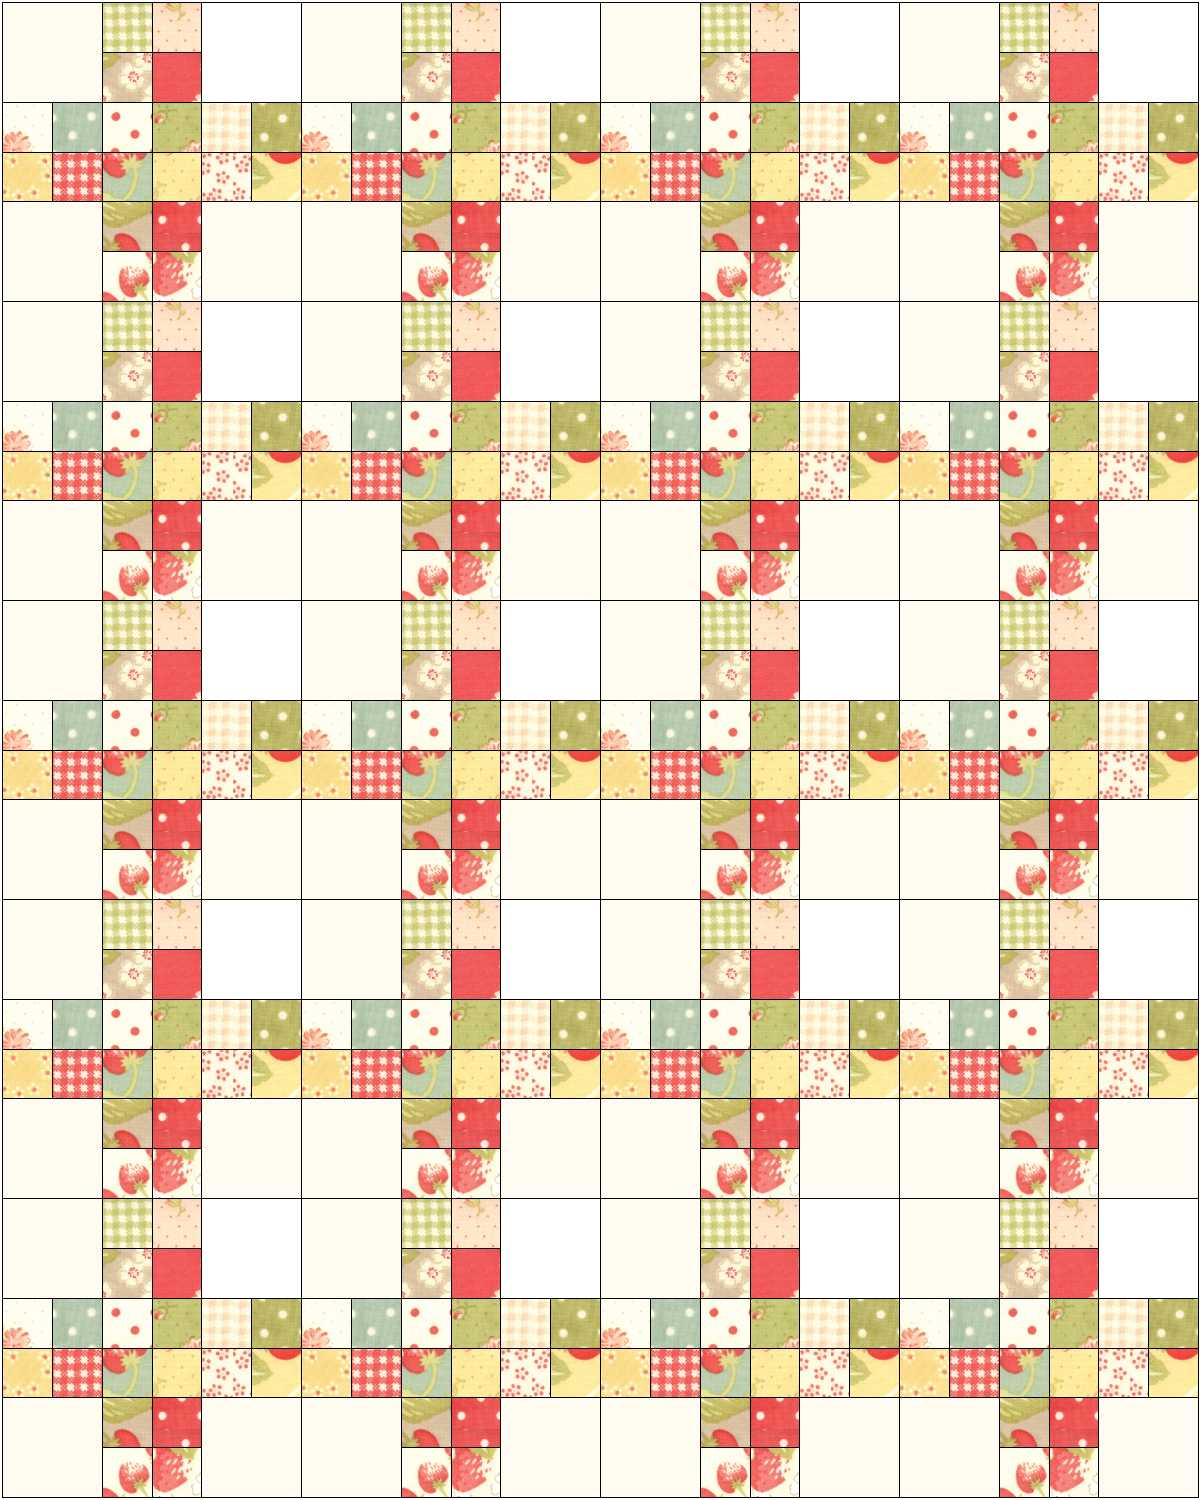 Stashbuster Scrappy Quilt by Corey Yoder from Little Miss Shabby